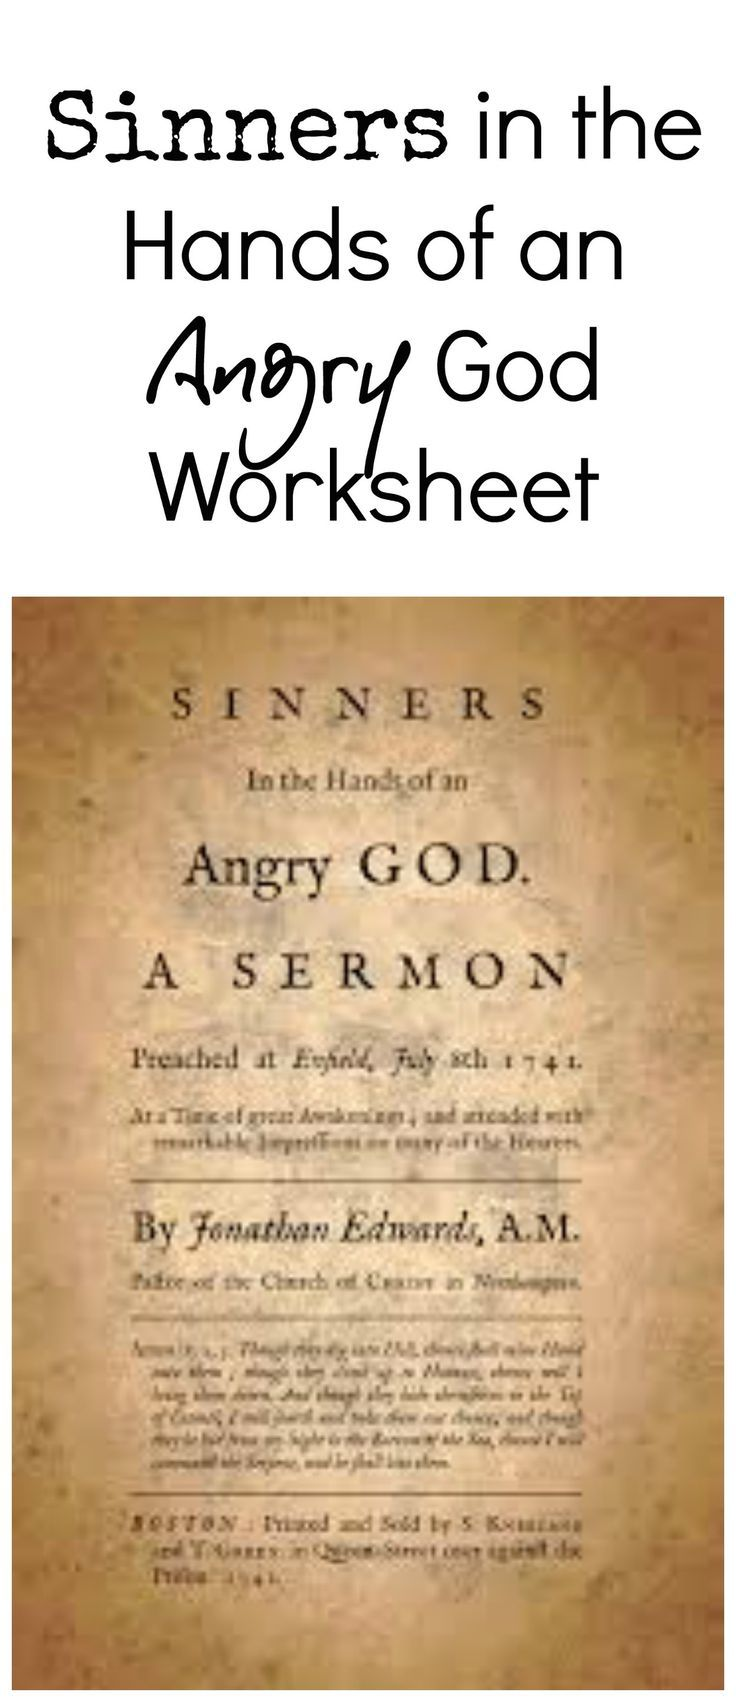 Worksheets Sinners In The Hands Of An Angry God Worksheet sinners in the hands of an angry god worksheet pinterest a designed to help students identify figurative language tone and rhetoric hans god